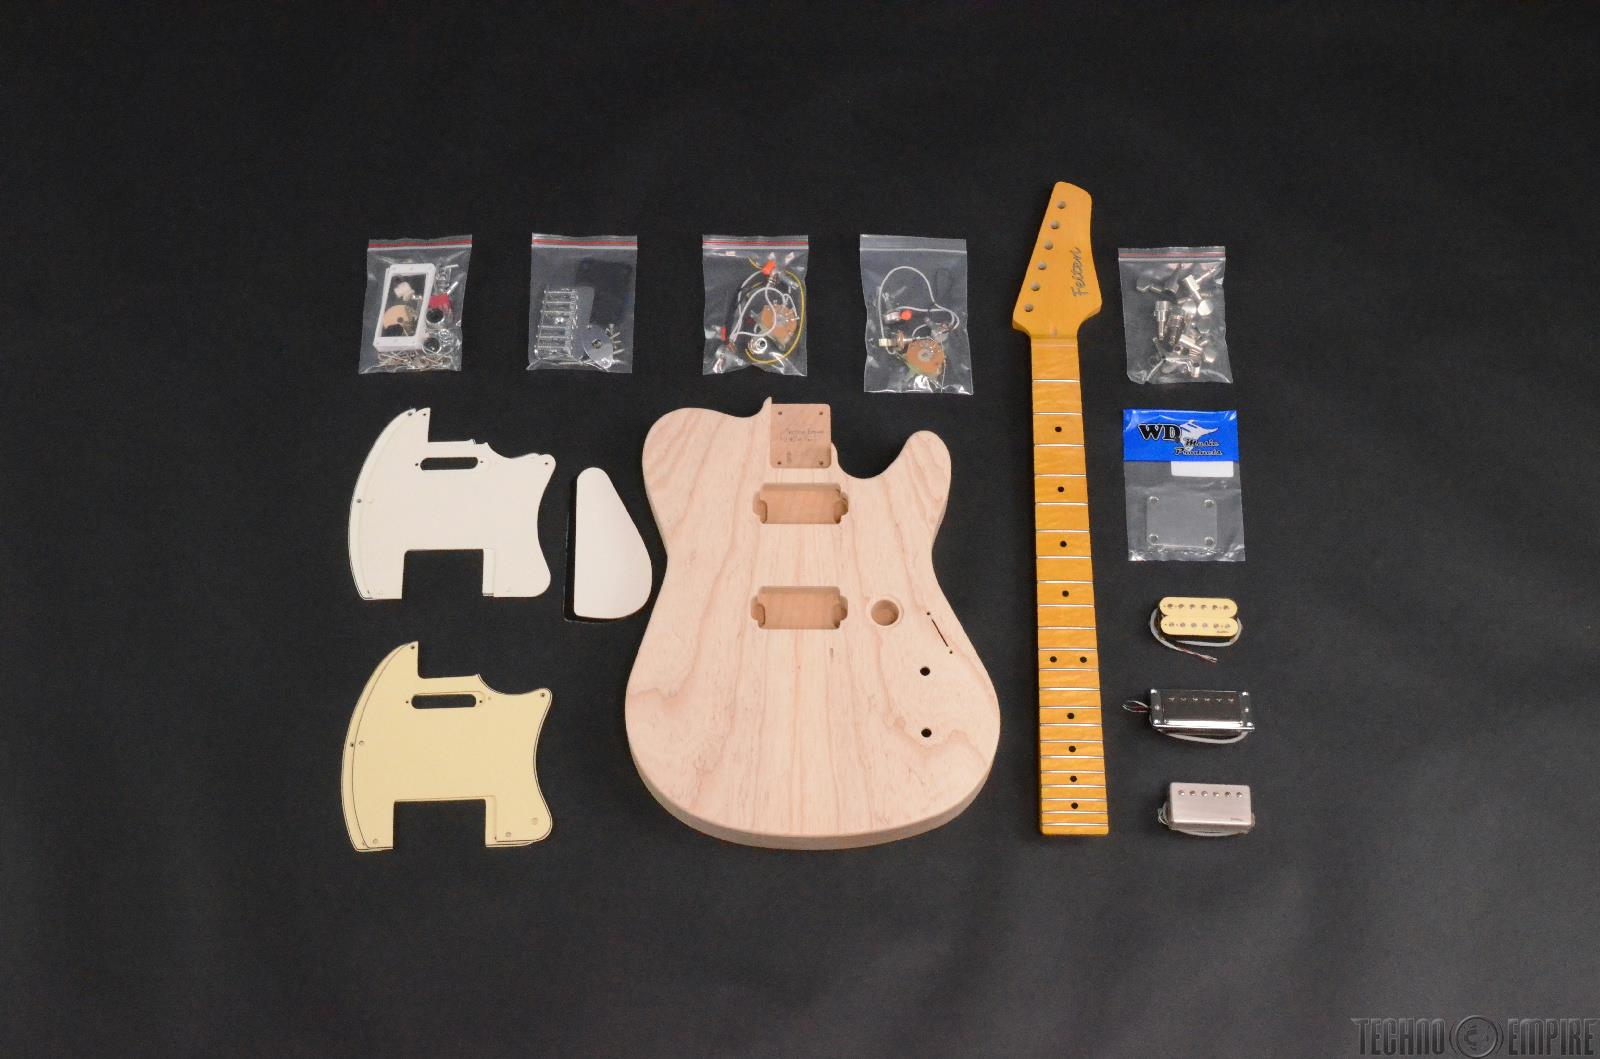 Buzz Feiten Gemini Elite Pro Build Your Own Electric Guitar Kit #28455